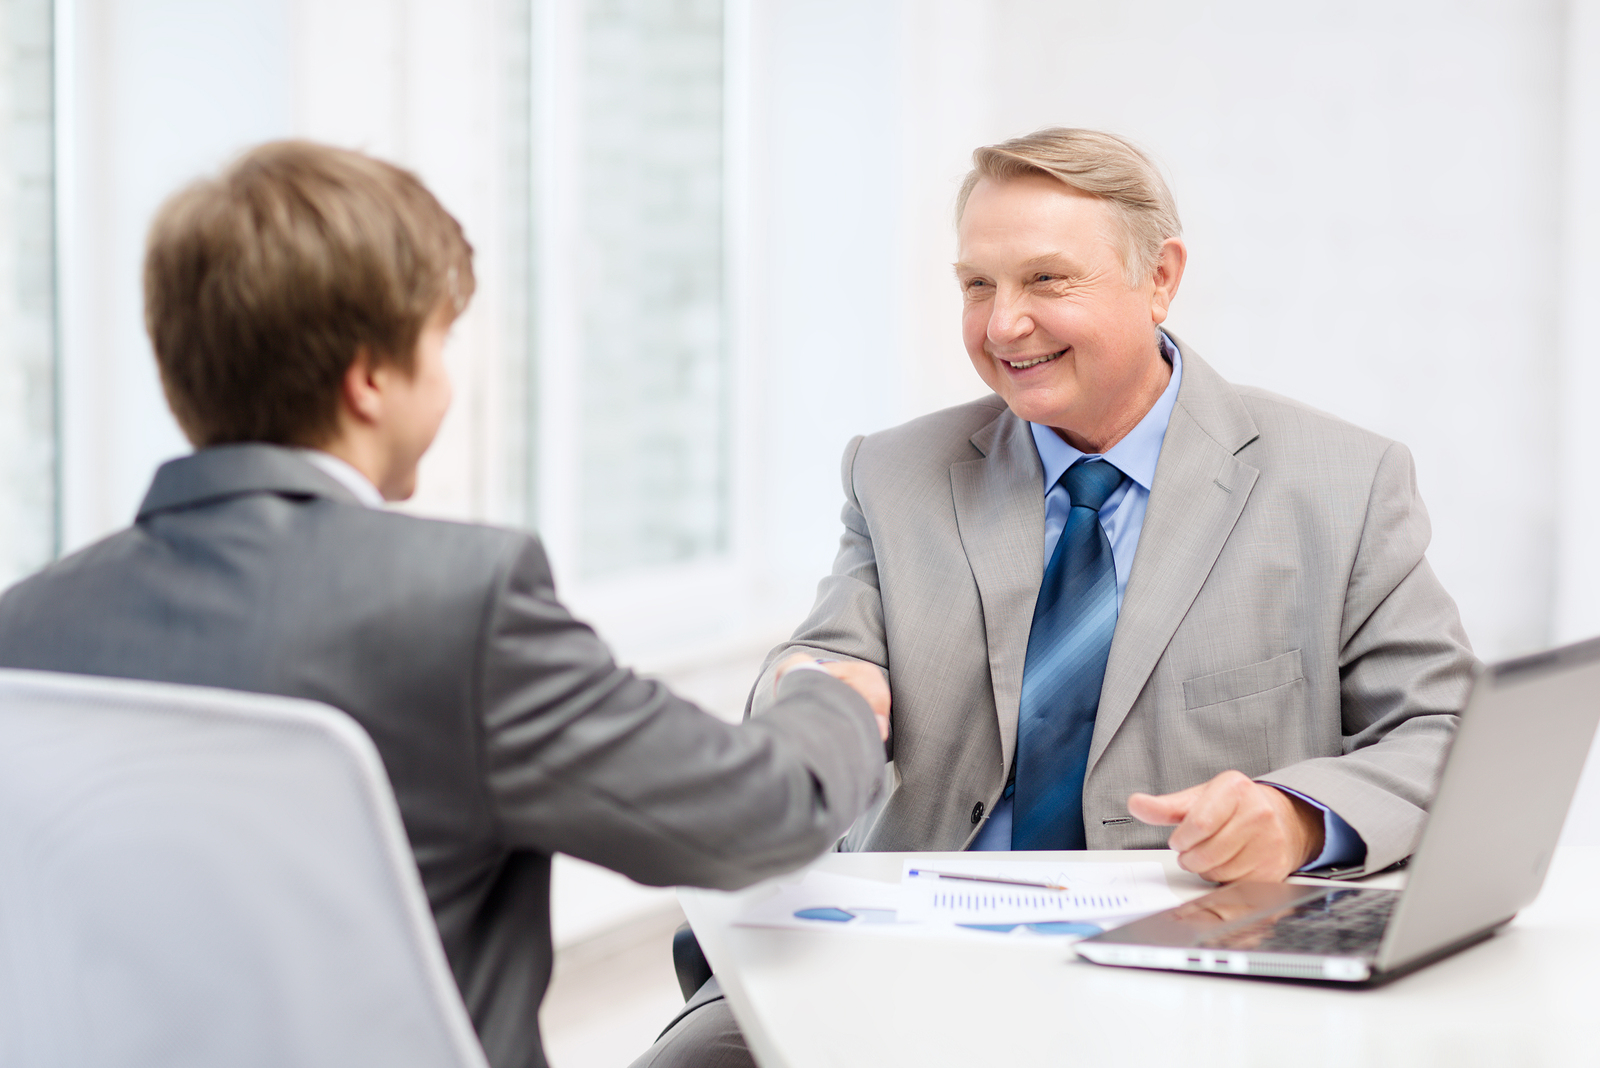 age discrimination during the recruitment process